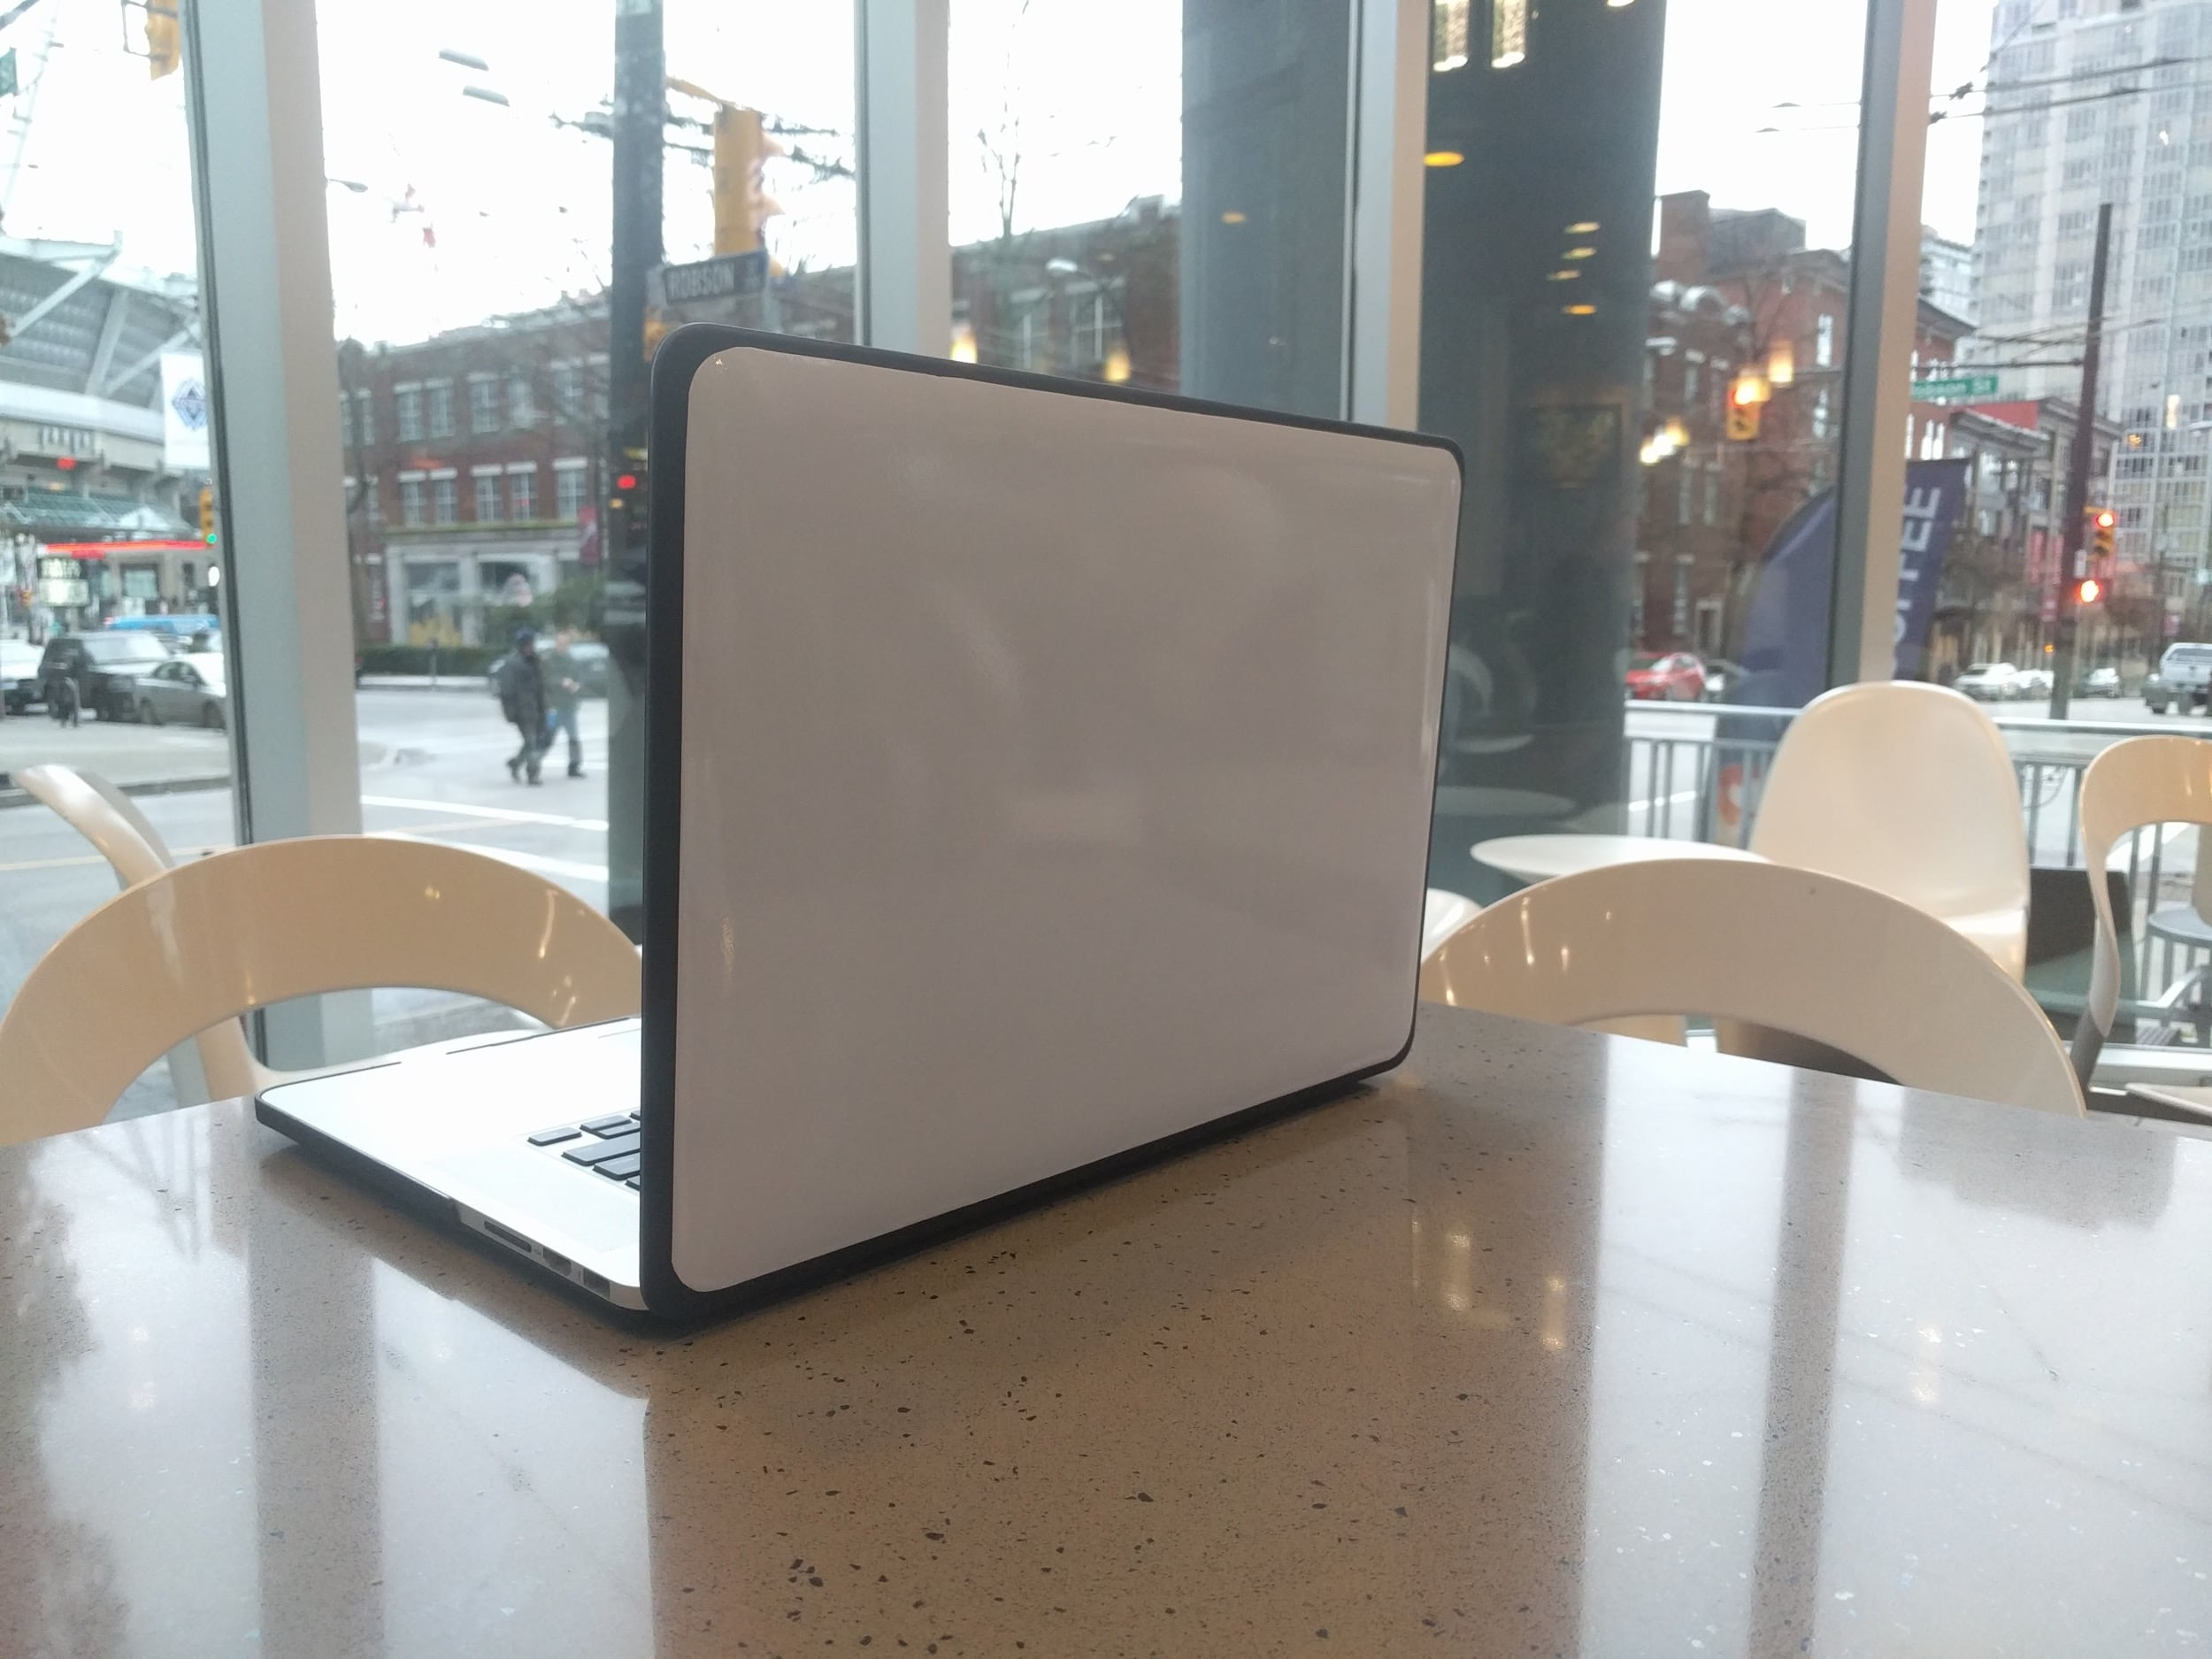 Laptop Whiteboard in a Coffee Shop